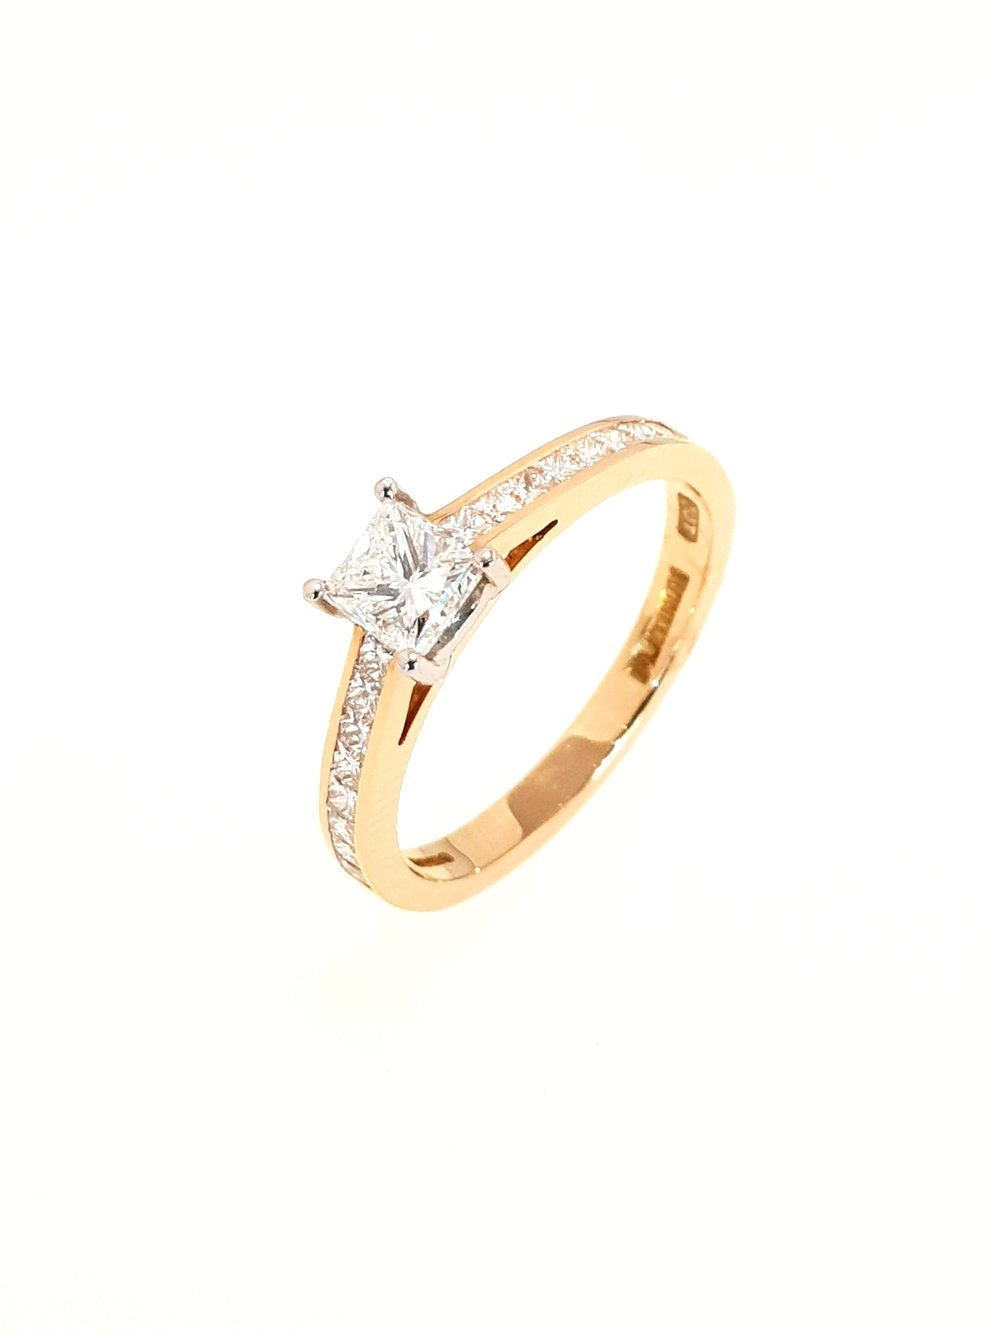 18ct Rose Gold Diamond Ring, Princess Cut  .39ct, G, Si1  Stock Code: N8729  £2700